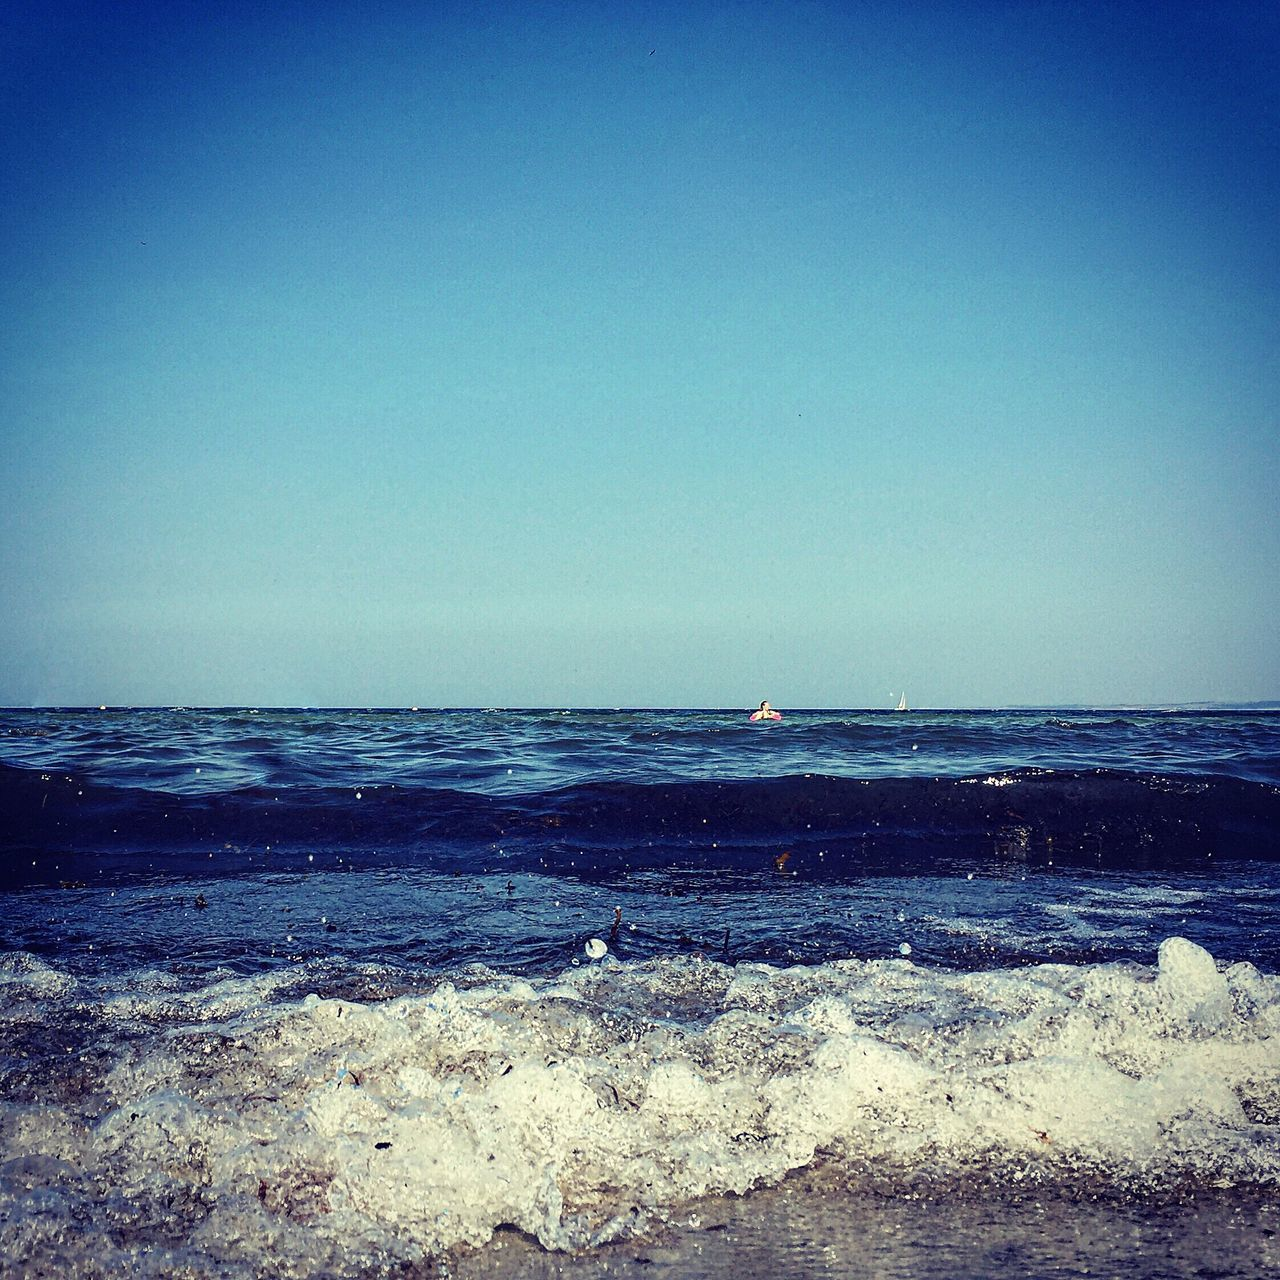 sea, horizon over water, water, nature, scenics, beauty in nature, clear sky, tranquil scene, tranquility, beach, blue, outdoors, no people, day, sky, wave, bird